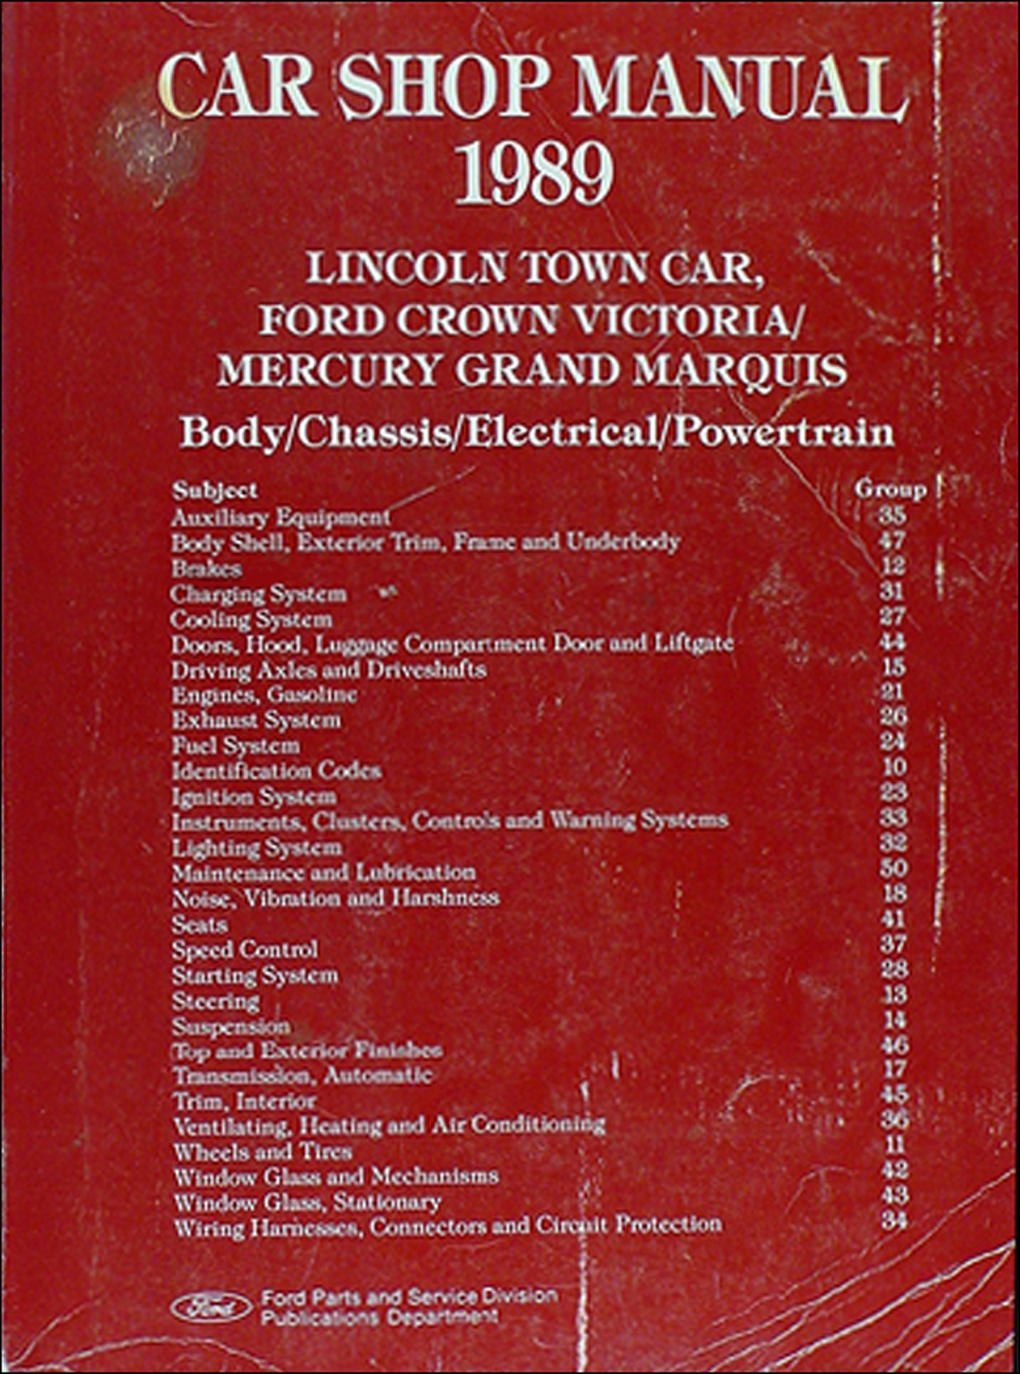 1989 Lincoln Town Car, Ford Crown Victoria, & Mercury Grand Marquis Shop Manual Original